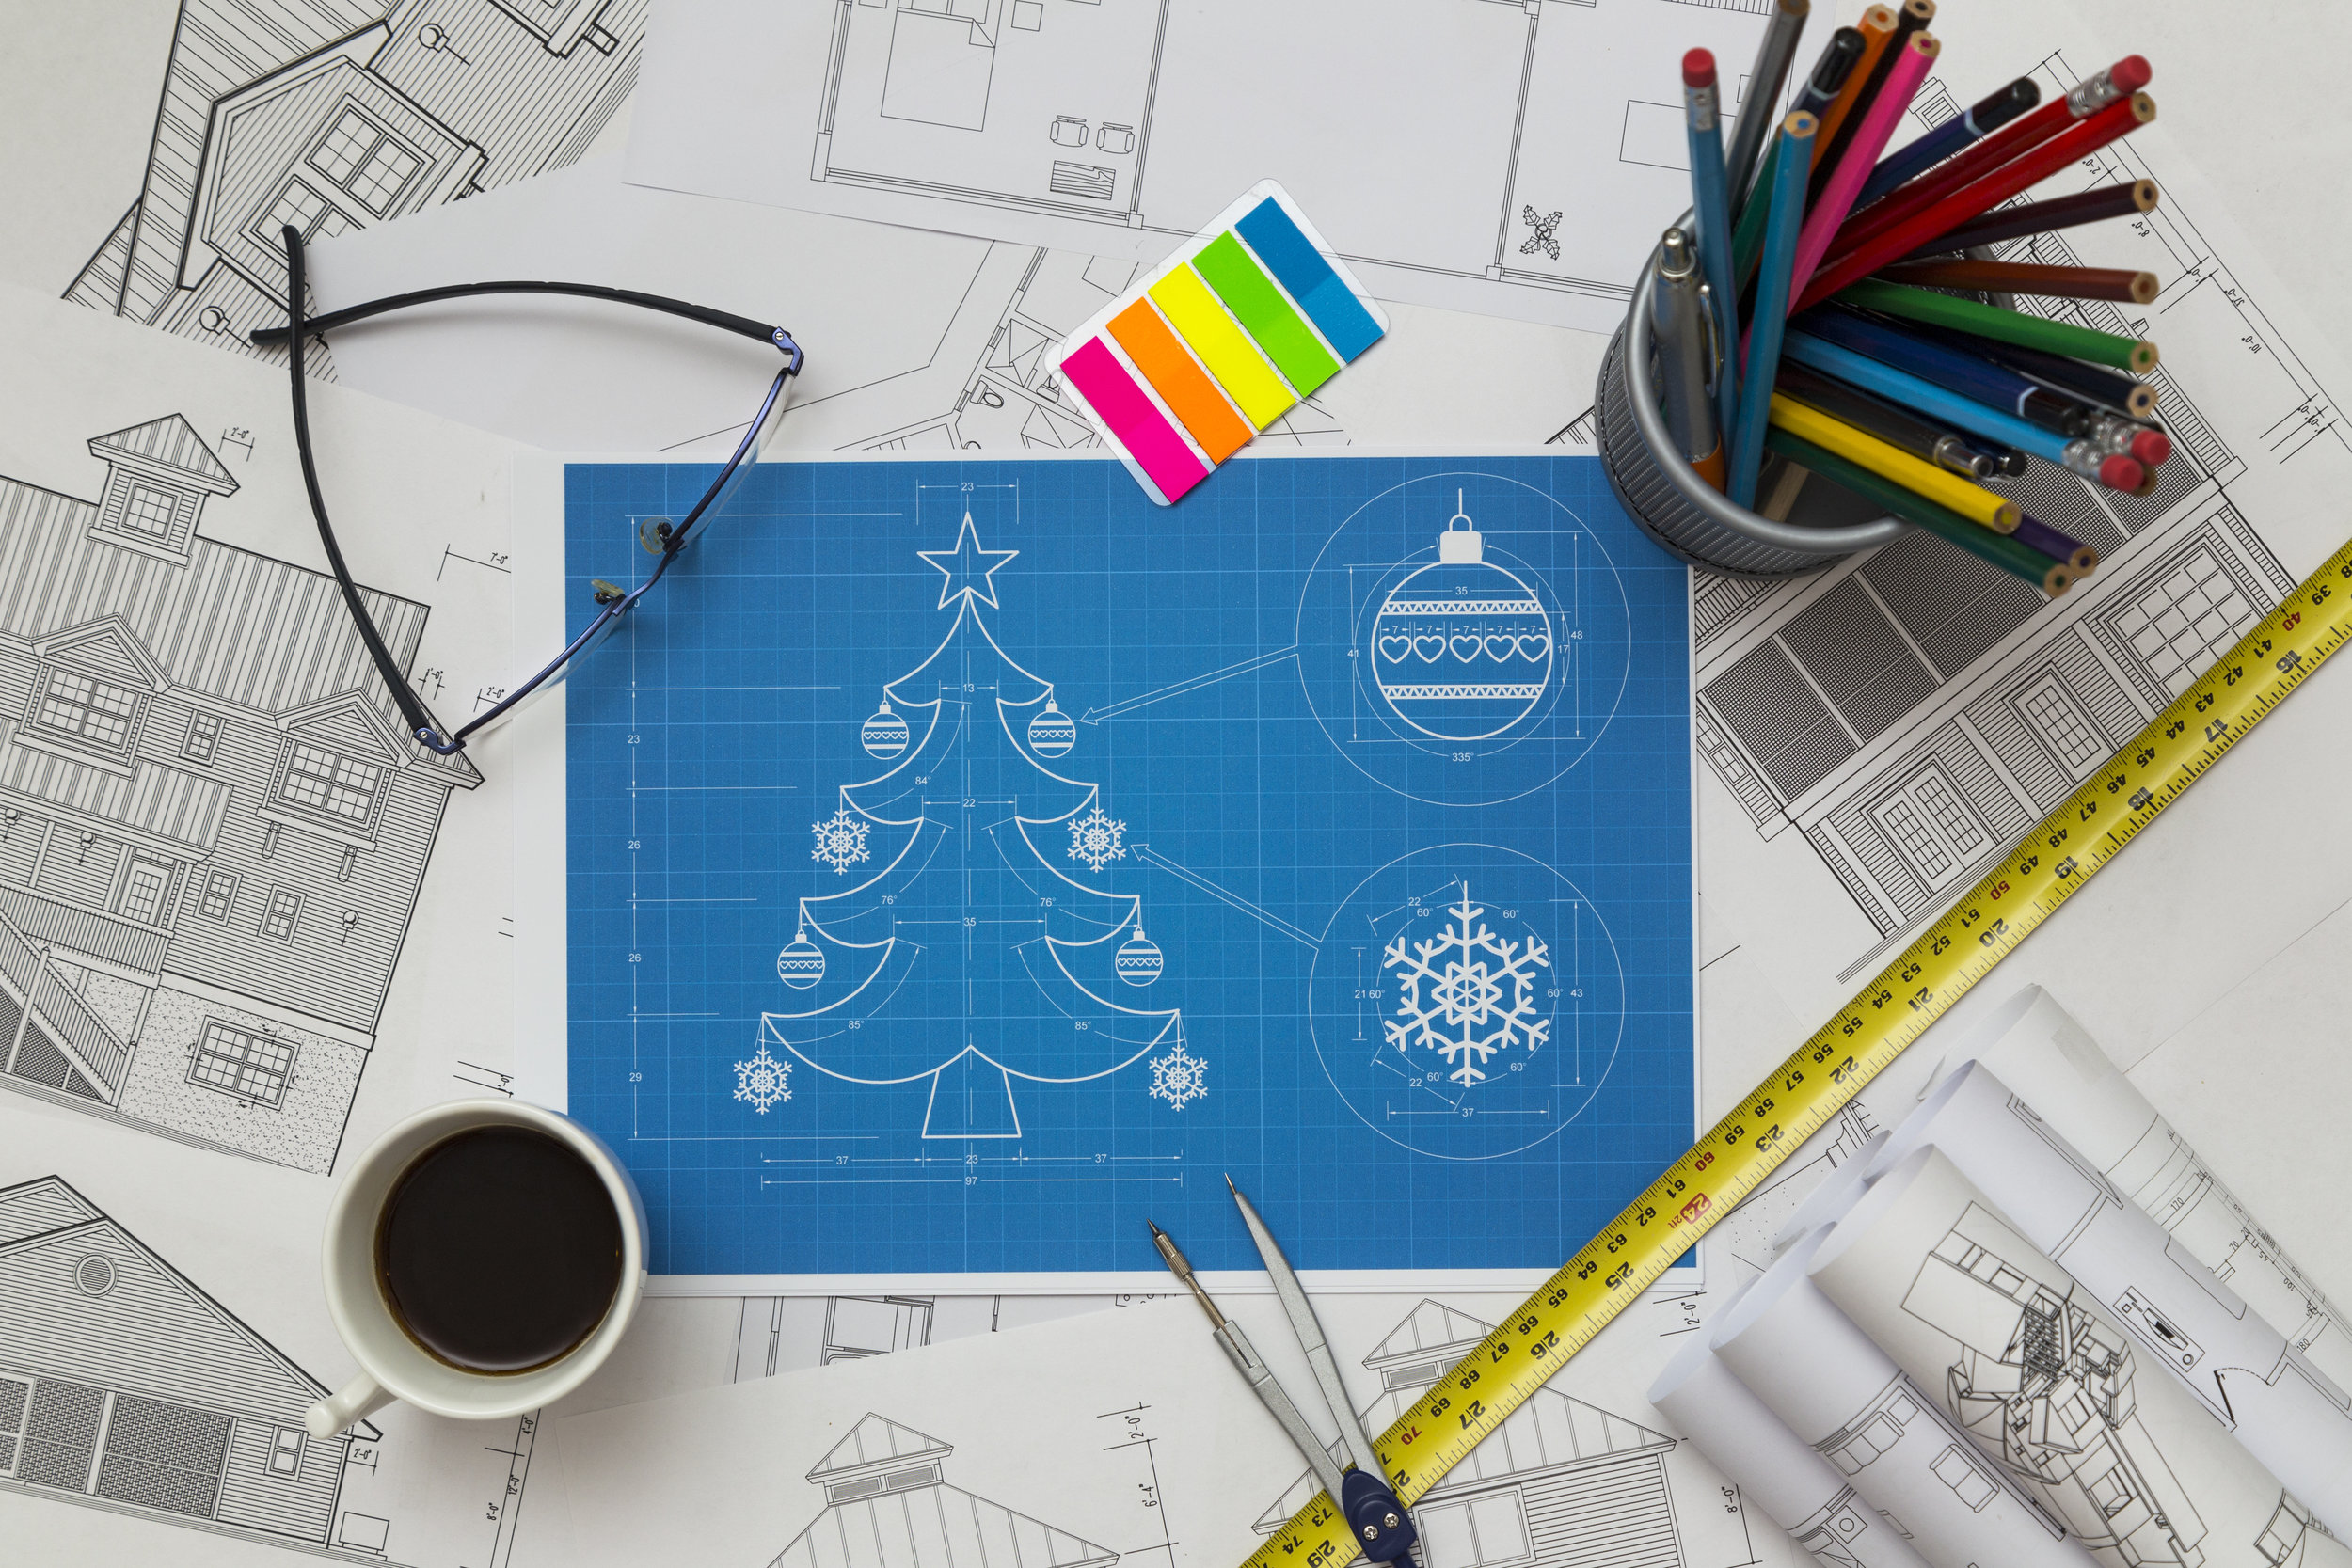 Design - Our Creative Team is committed to making your vision reality. From our in-house illustrators and 3D artists, to our architects and structural engineers, we are fully capable of designing a holiday program that is second to none.